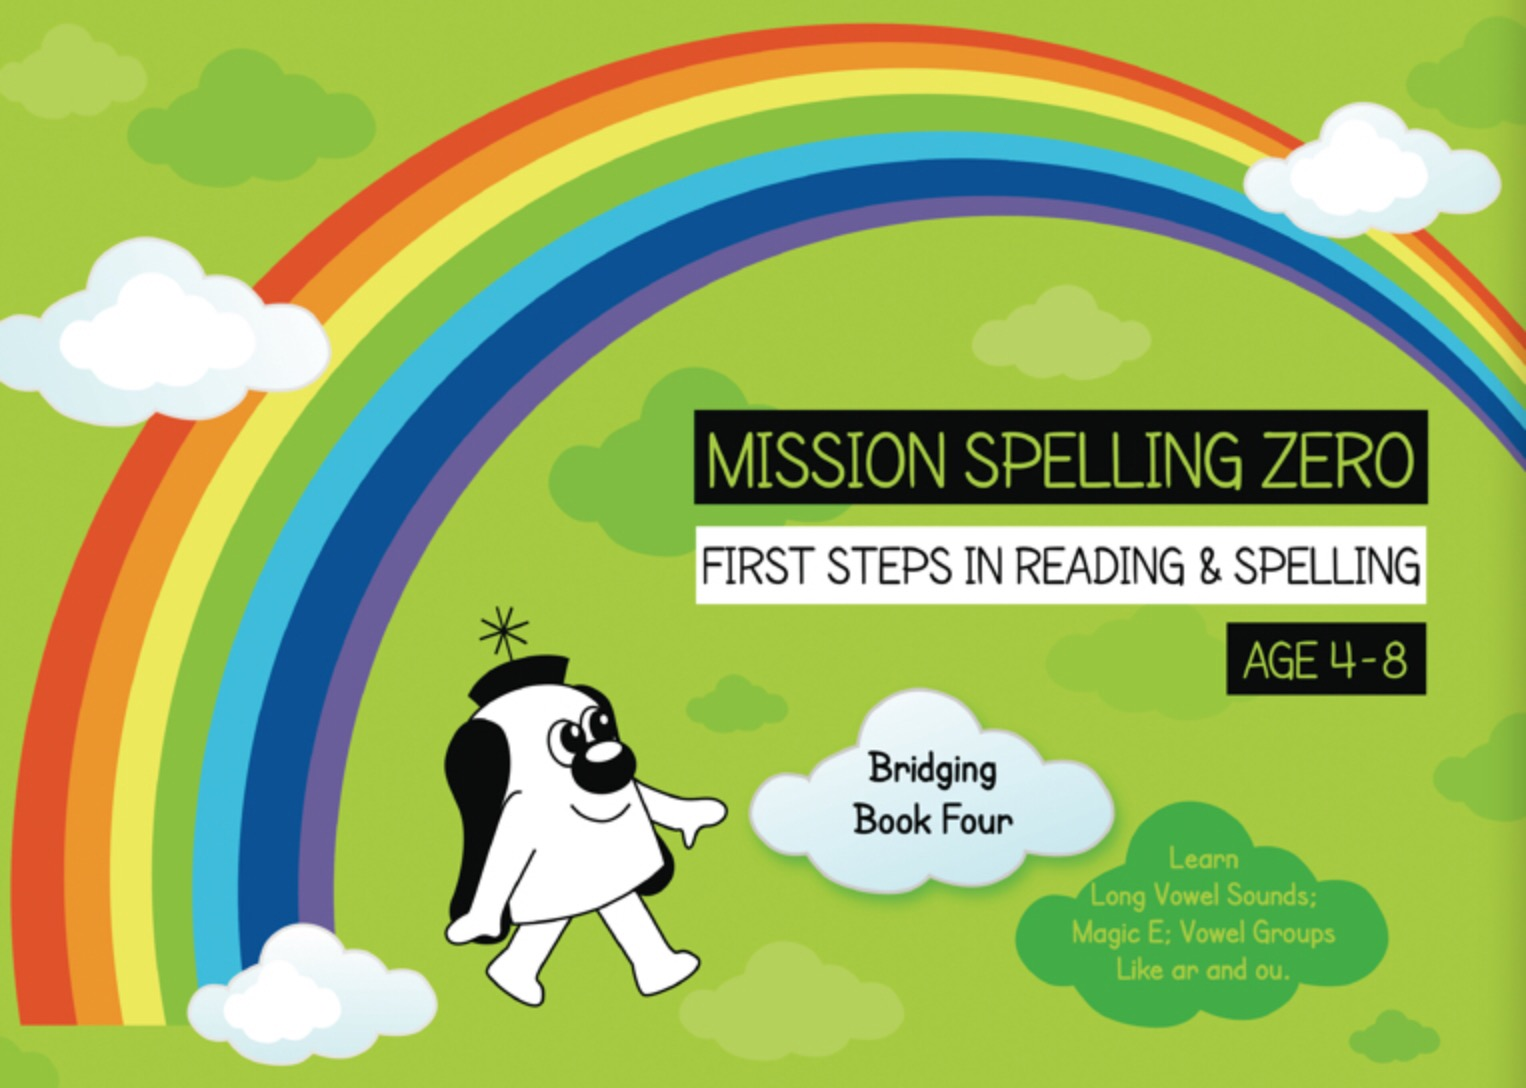 Phonics And Spelling Practice: Learn Long Vowels And Magic 'e' (Print Edition)